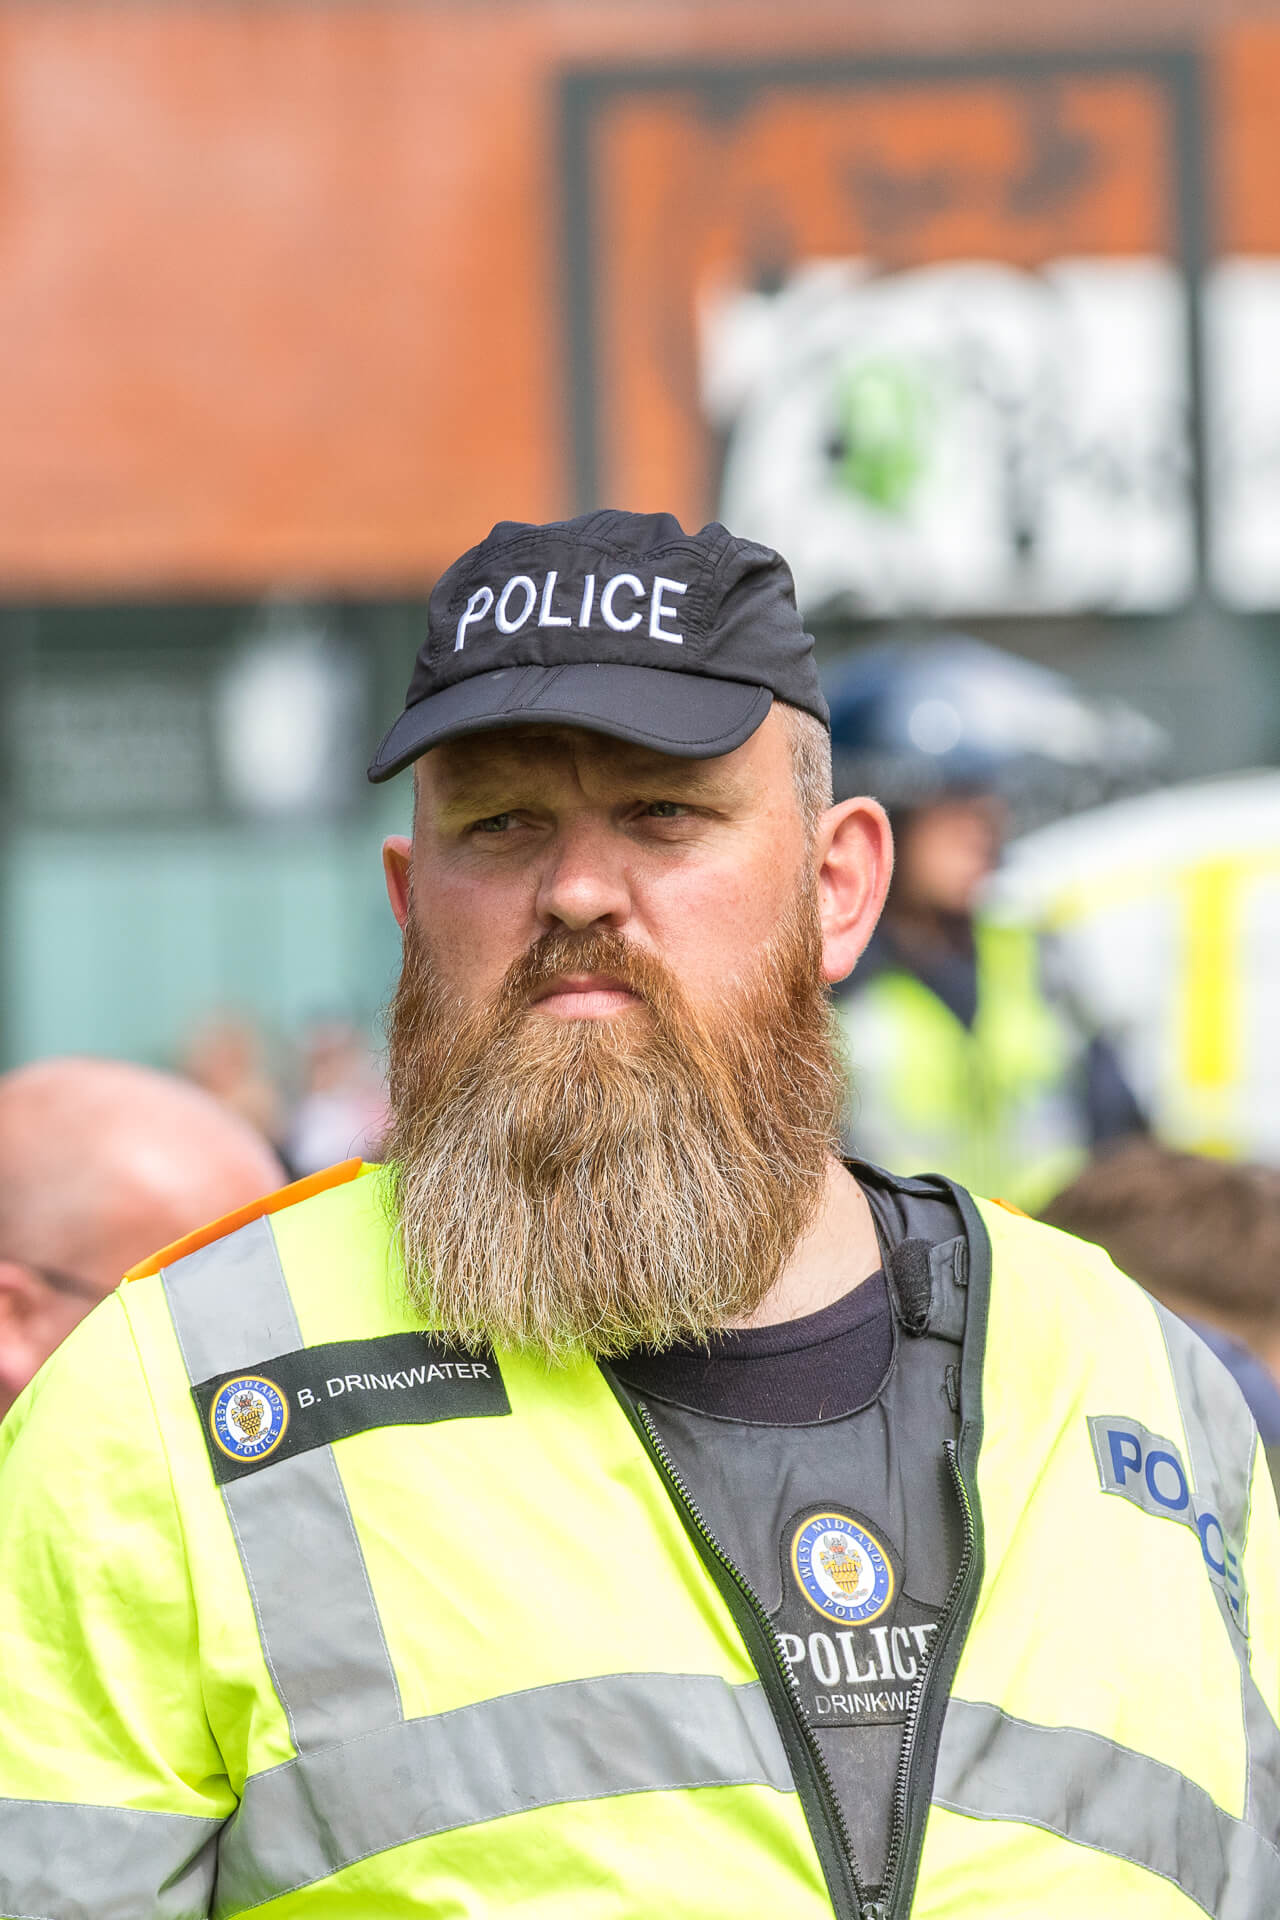 PC Drinkwater of the West Midlands Police seen on duty during the BNP March in Worcester in 2019. PC Drinkwater is looking across and slightly to his right hand side. He is seen in a Hi Viz jacket and black baseball cap (with POLICE written on it), he sports a magnificent full beard and moustache.